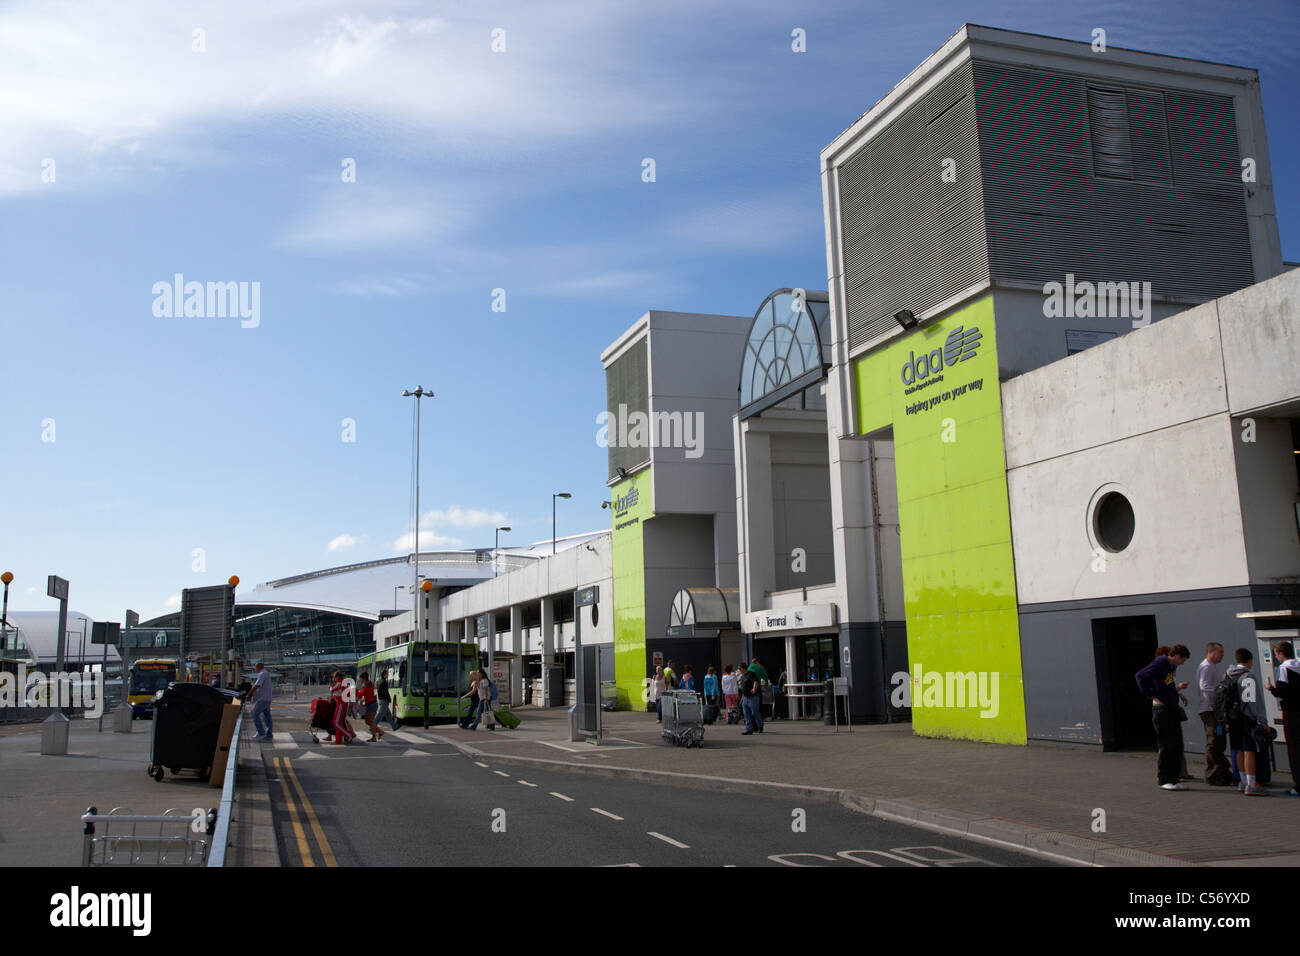 passengers crossing pedestrian crossing at old terminal 1 entrance dublin airport republic of ireland europe - Stock Image